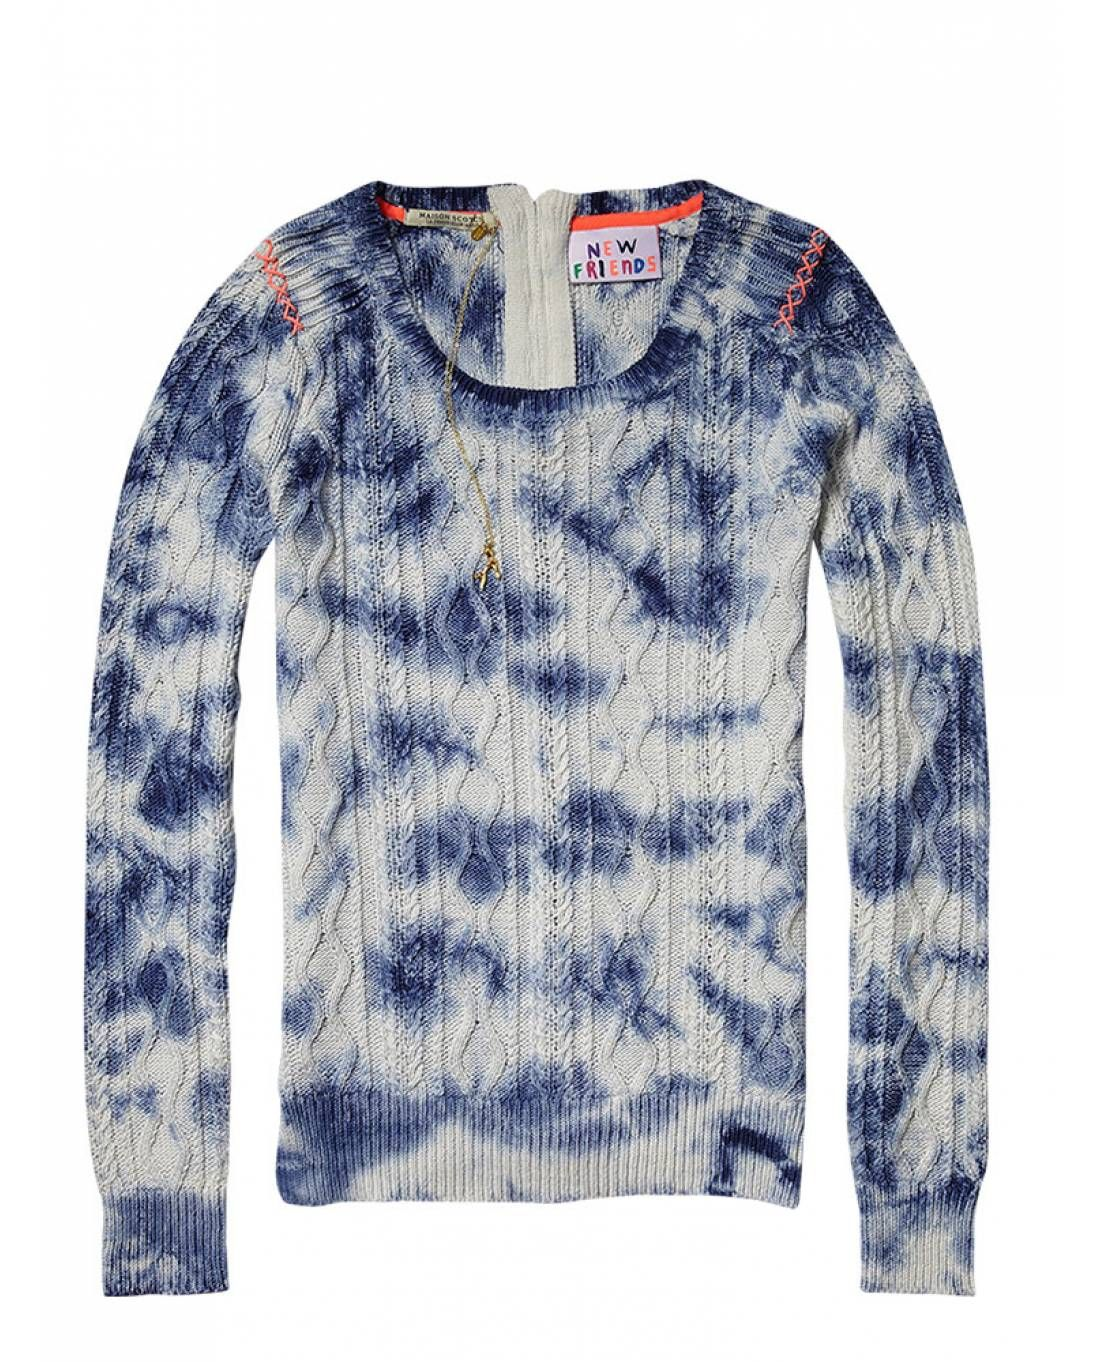 Cable knit with tie-dye effect and braided cord - Neon Surf by Maison Scotch